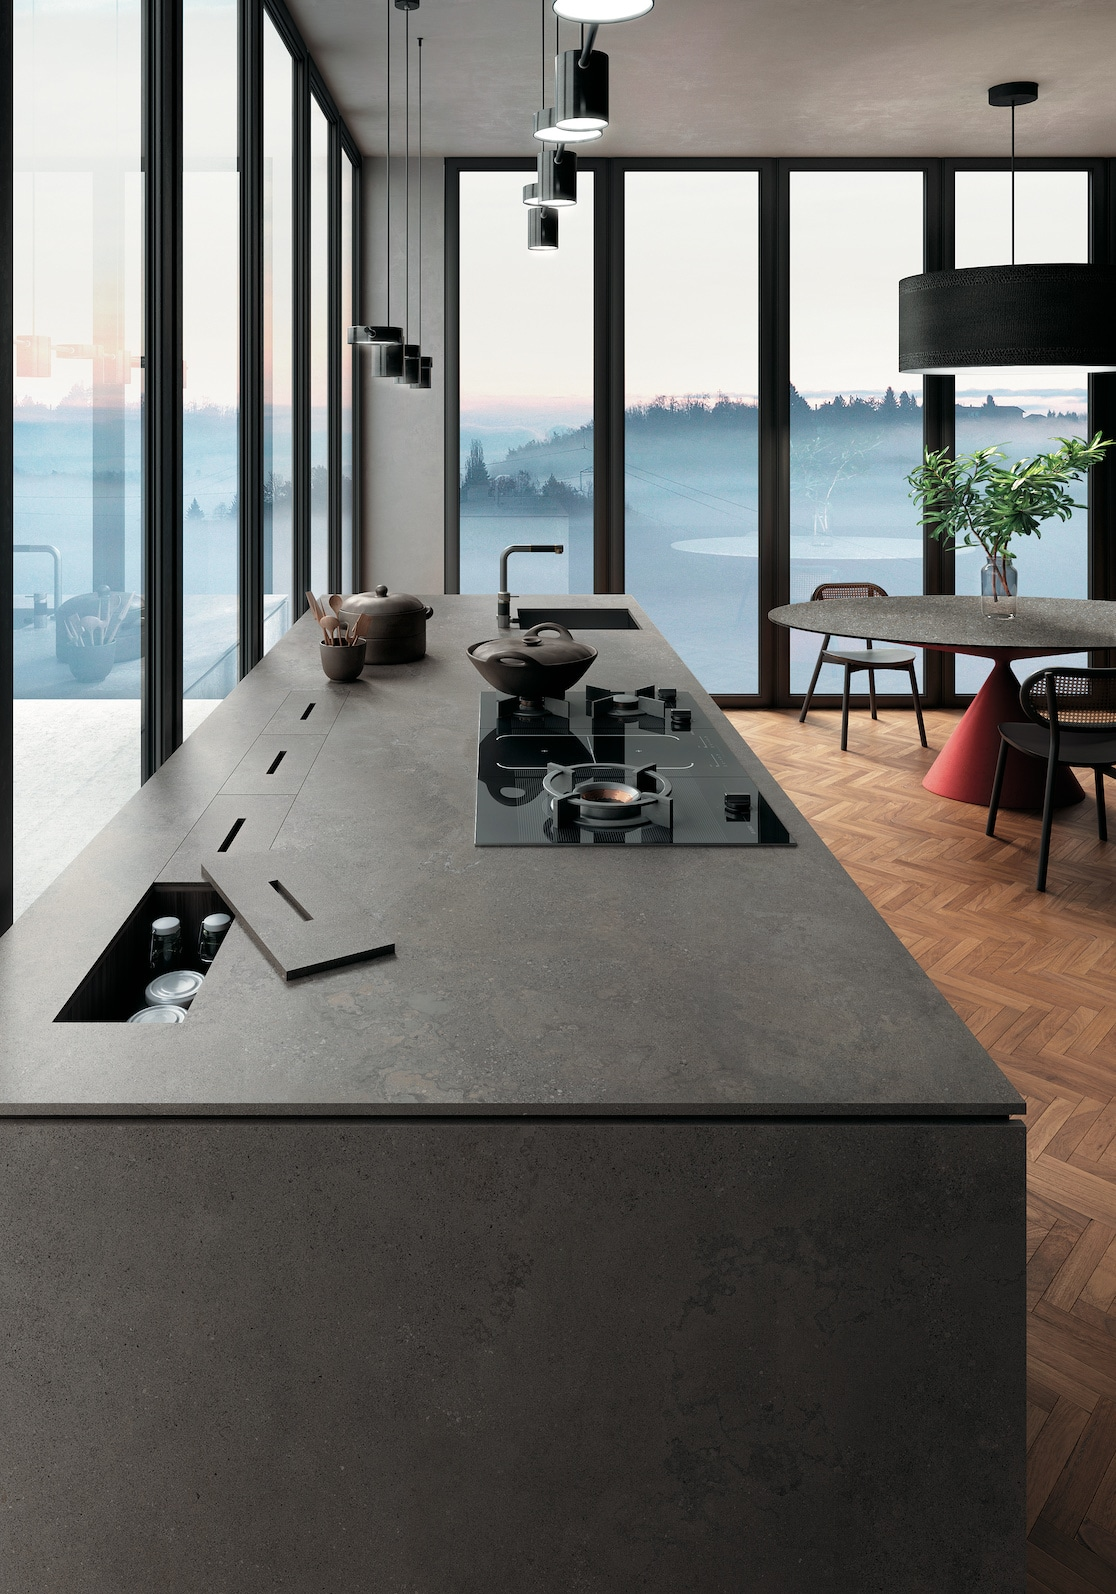 Infinity Cersaie Cucina porcelain countertops Buxy Select